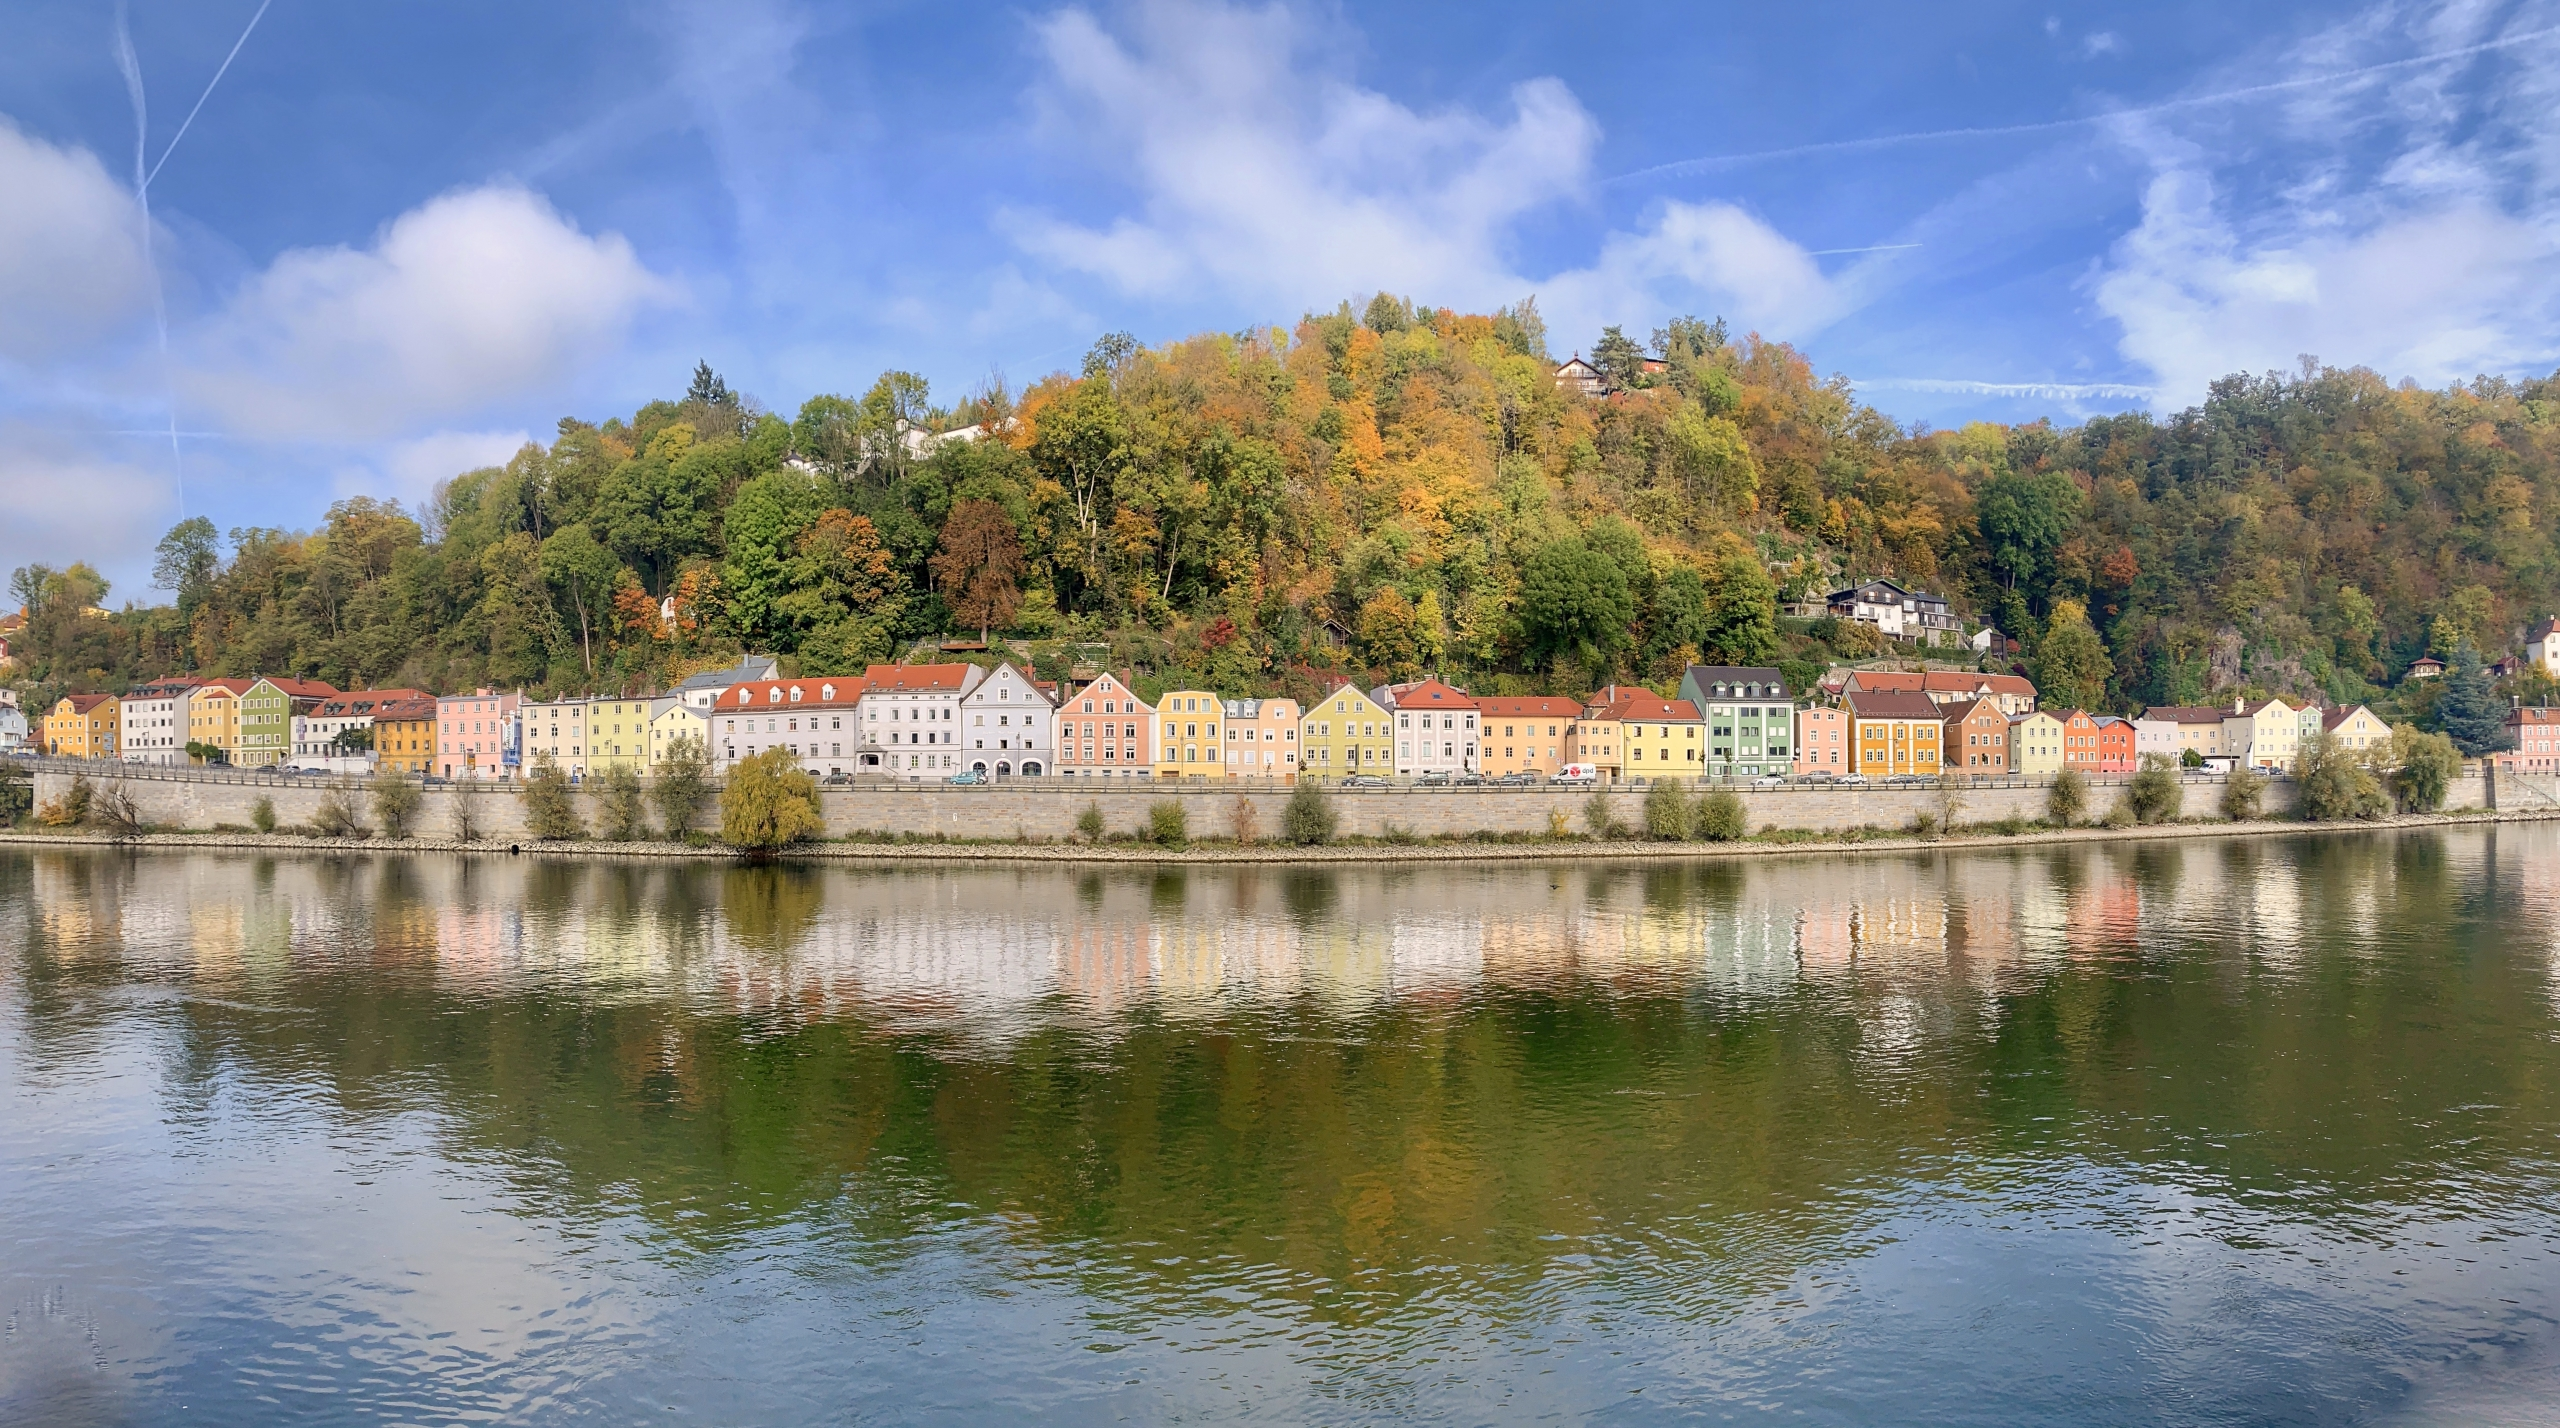 Passau panorama over the Danube